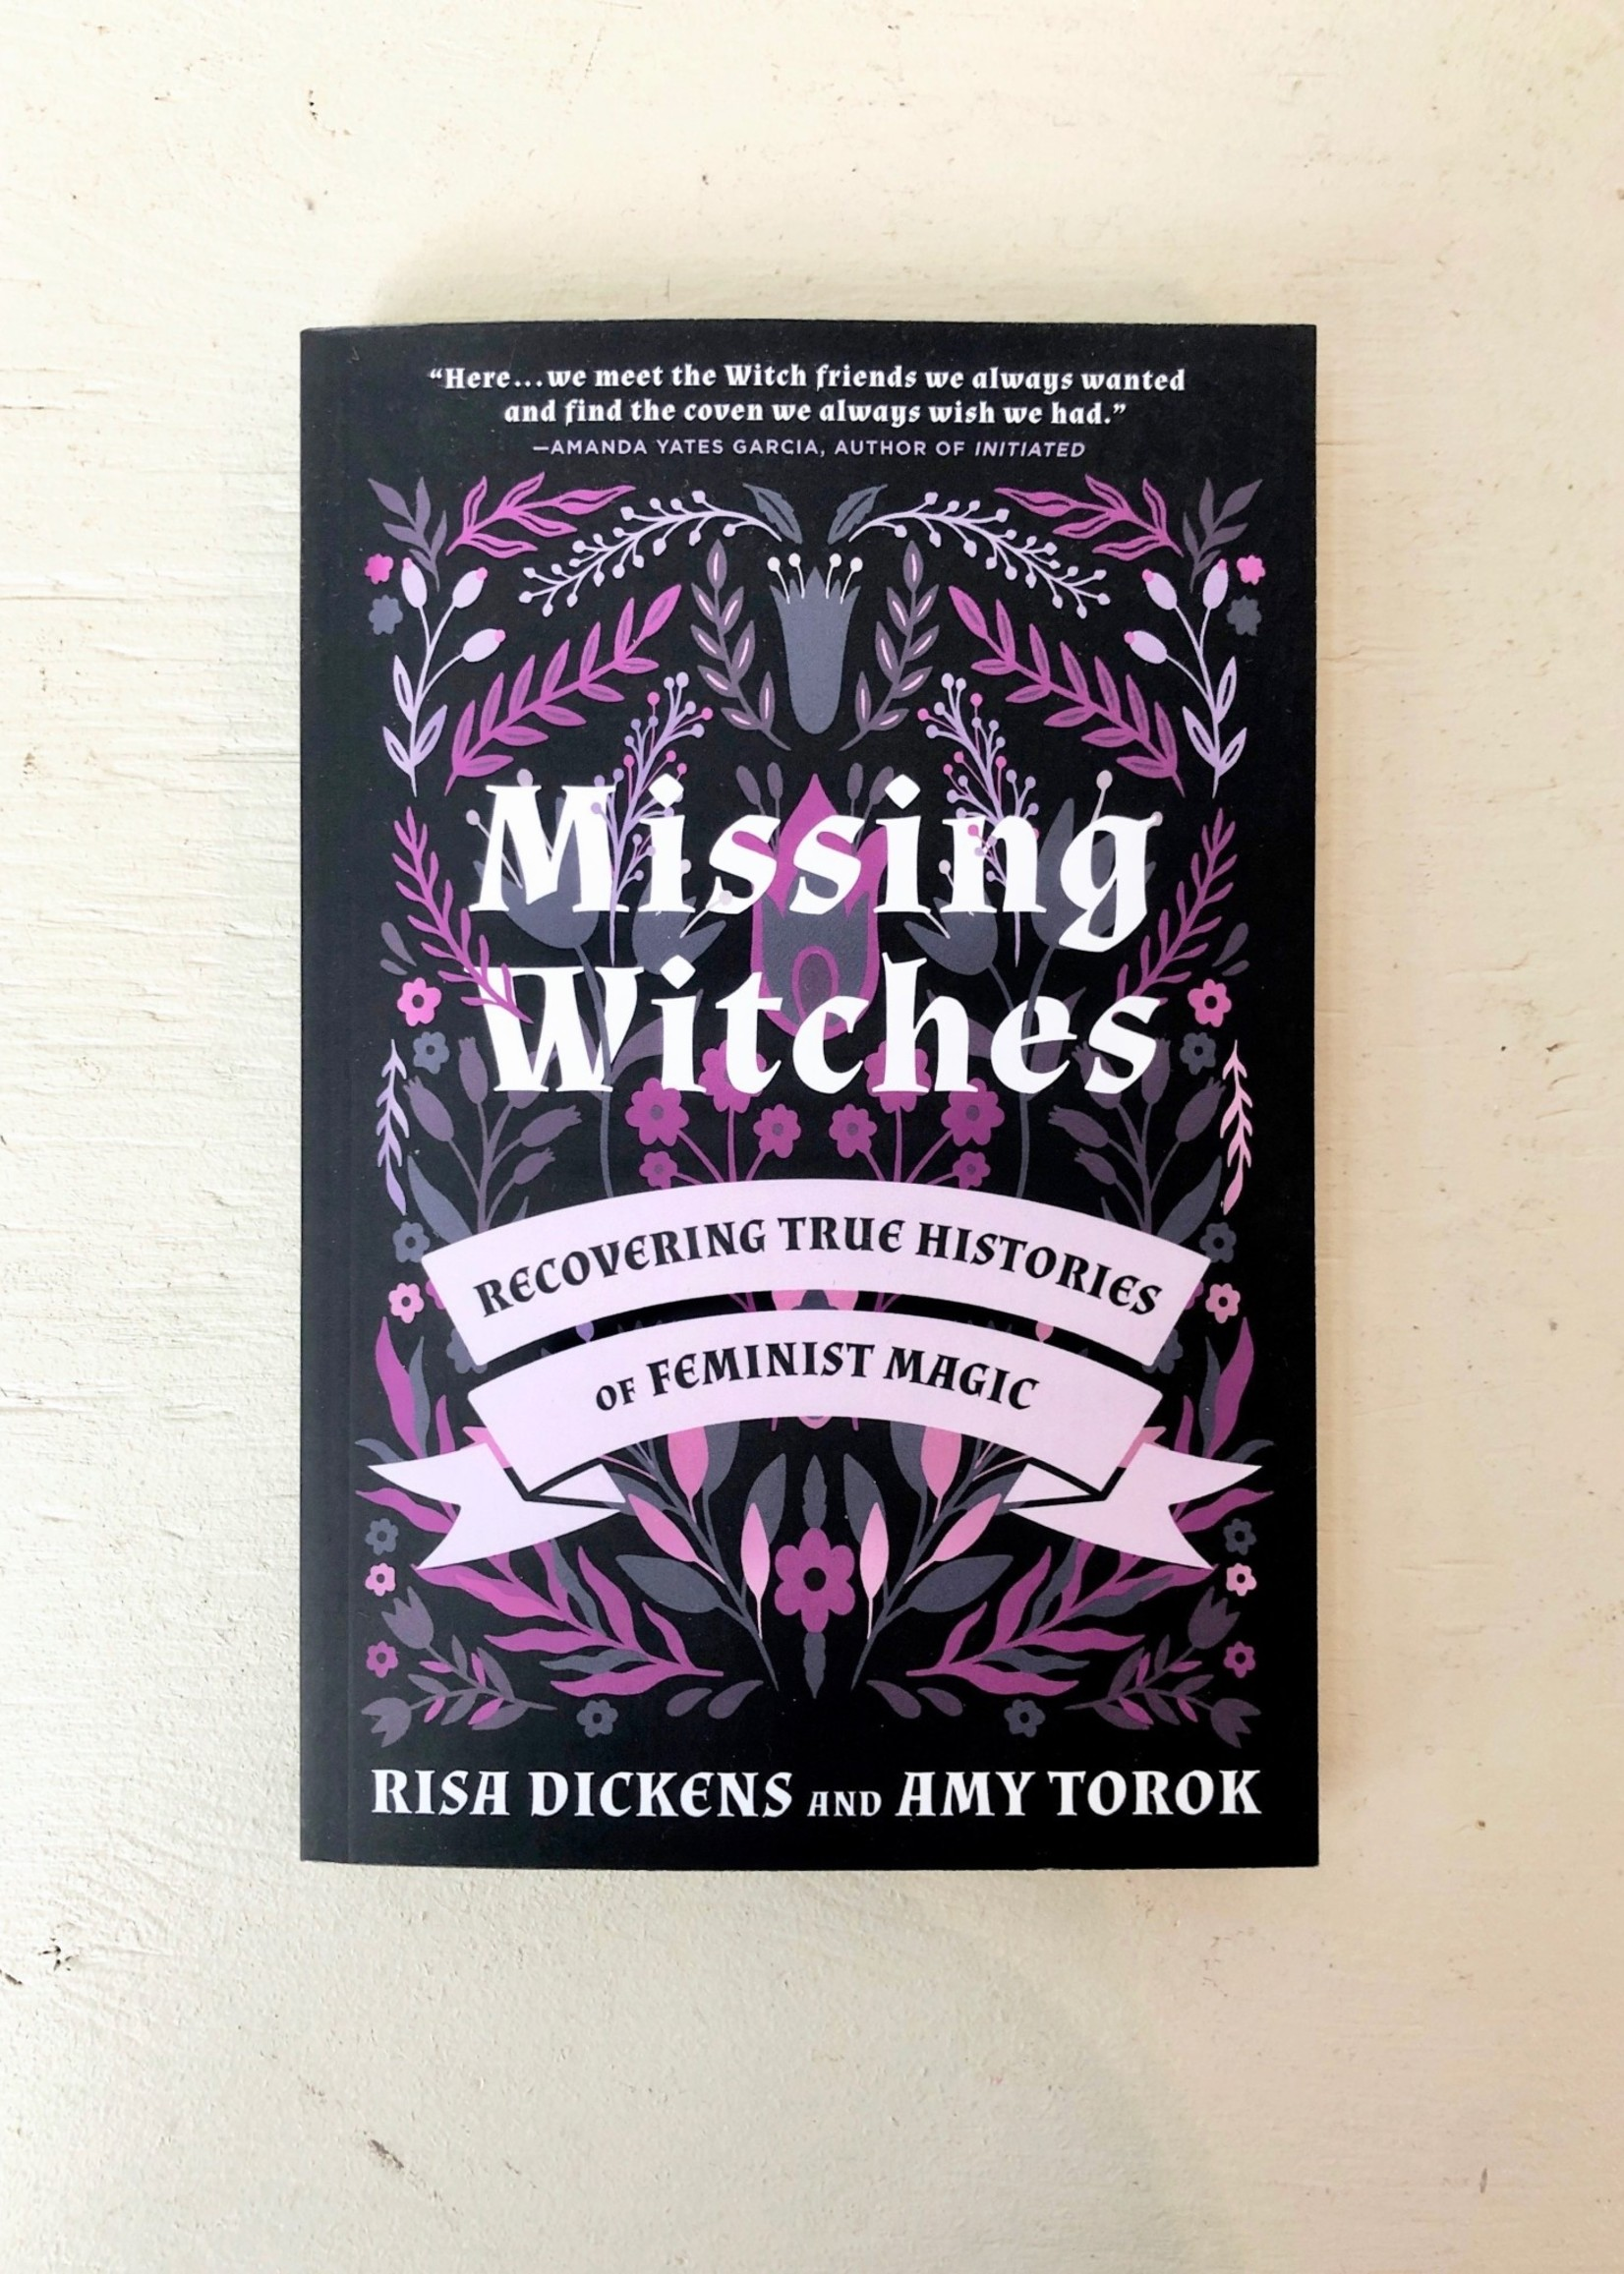 """Risa Dickens and Amy Torok """"Missing Witches"""" by Risa Dickens and Amy Torok"""